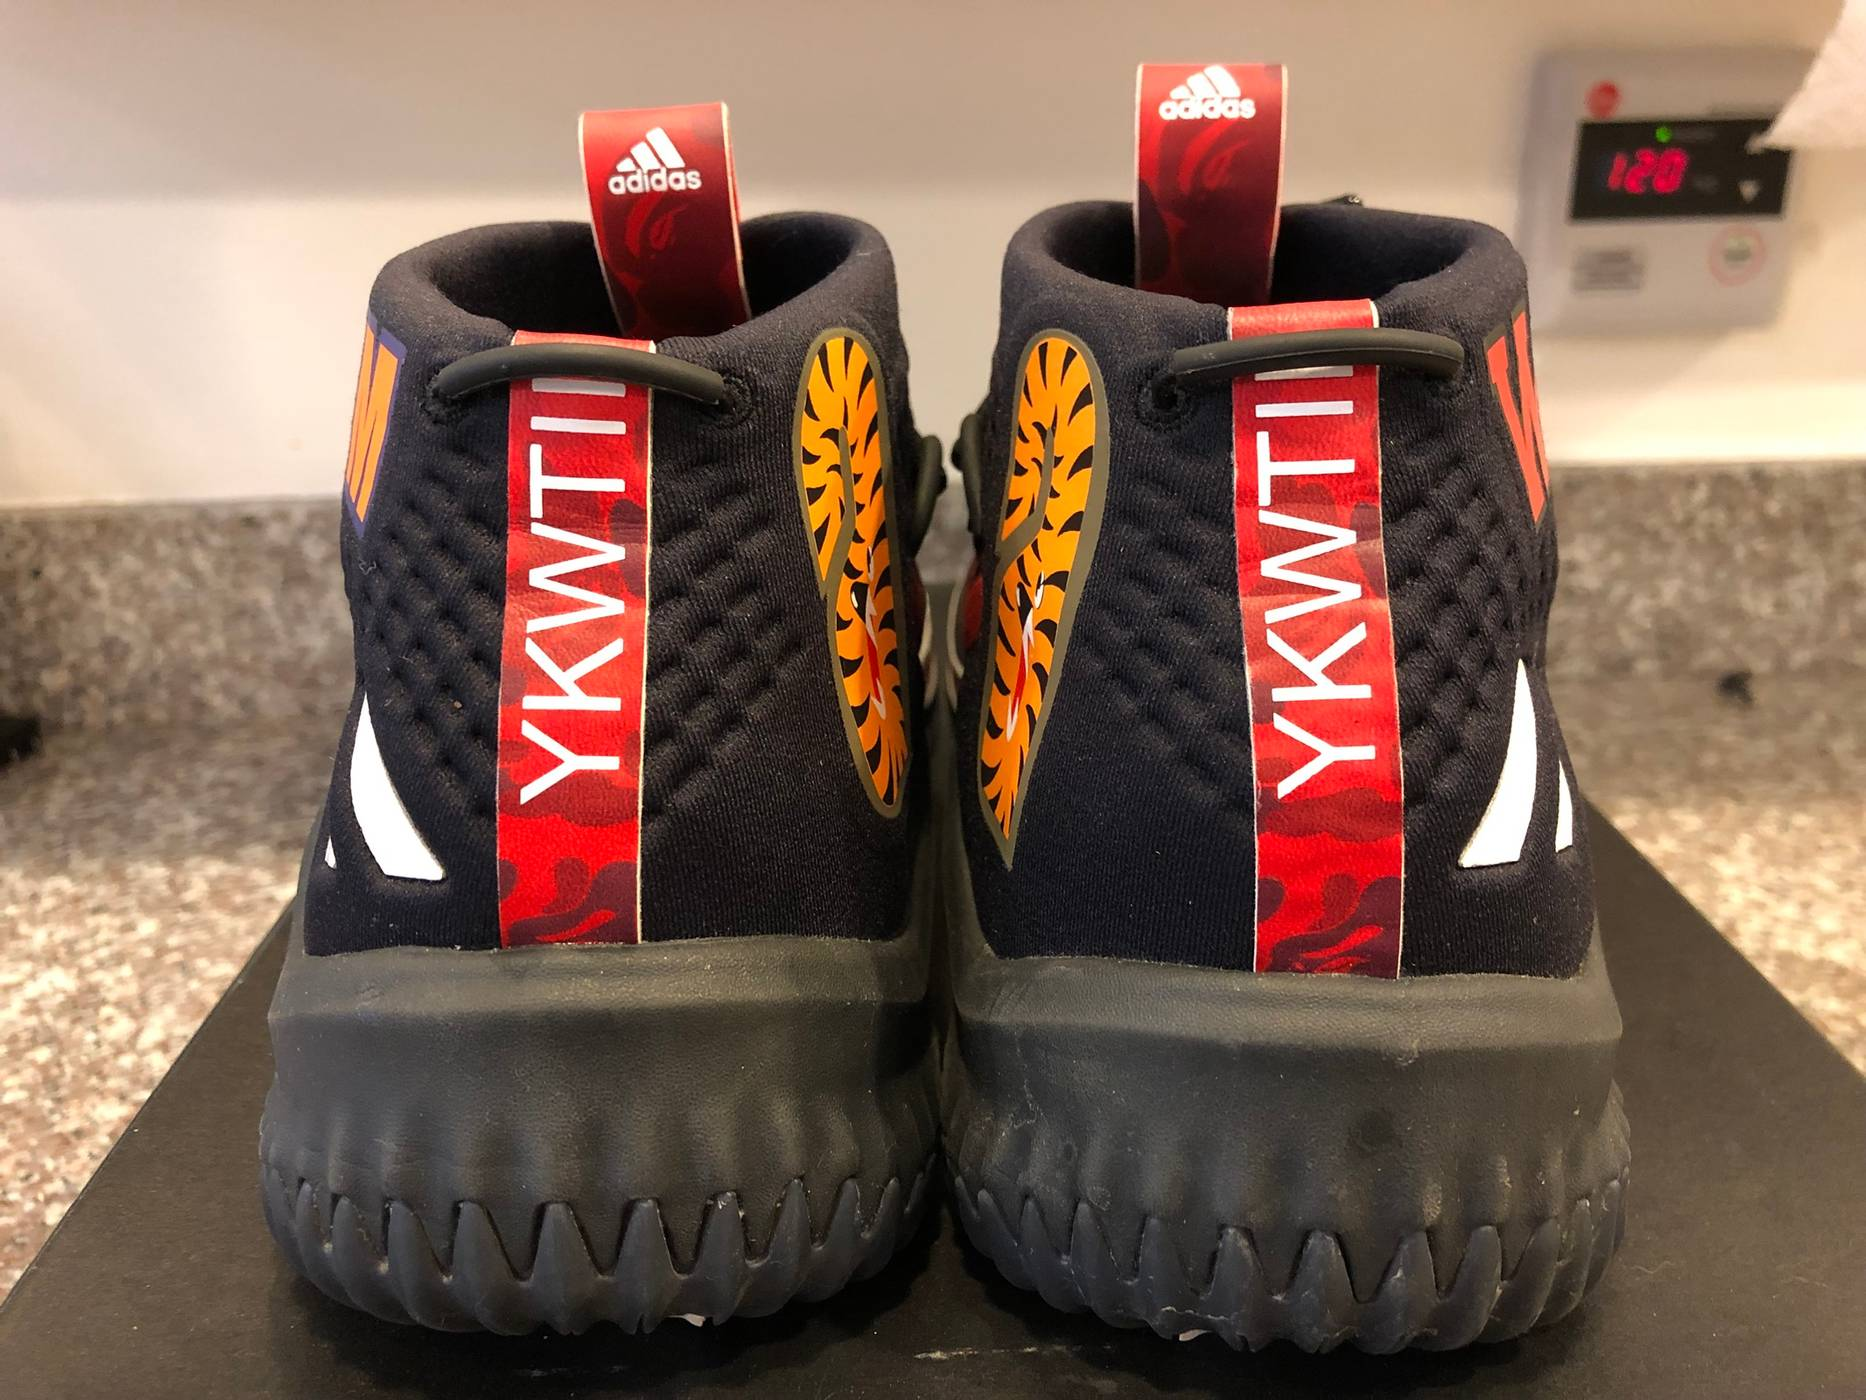 cheaper 8260b 89d45 Adidas Bape Adidas Dame 4 Red Size 10 - Low-Top Sneakers for ...